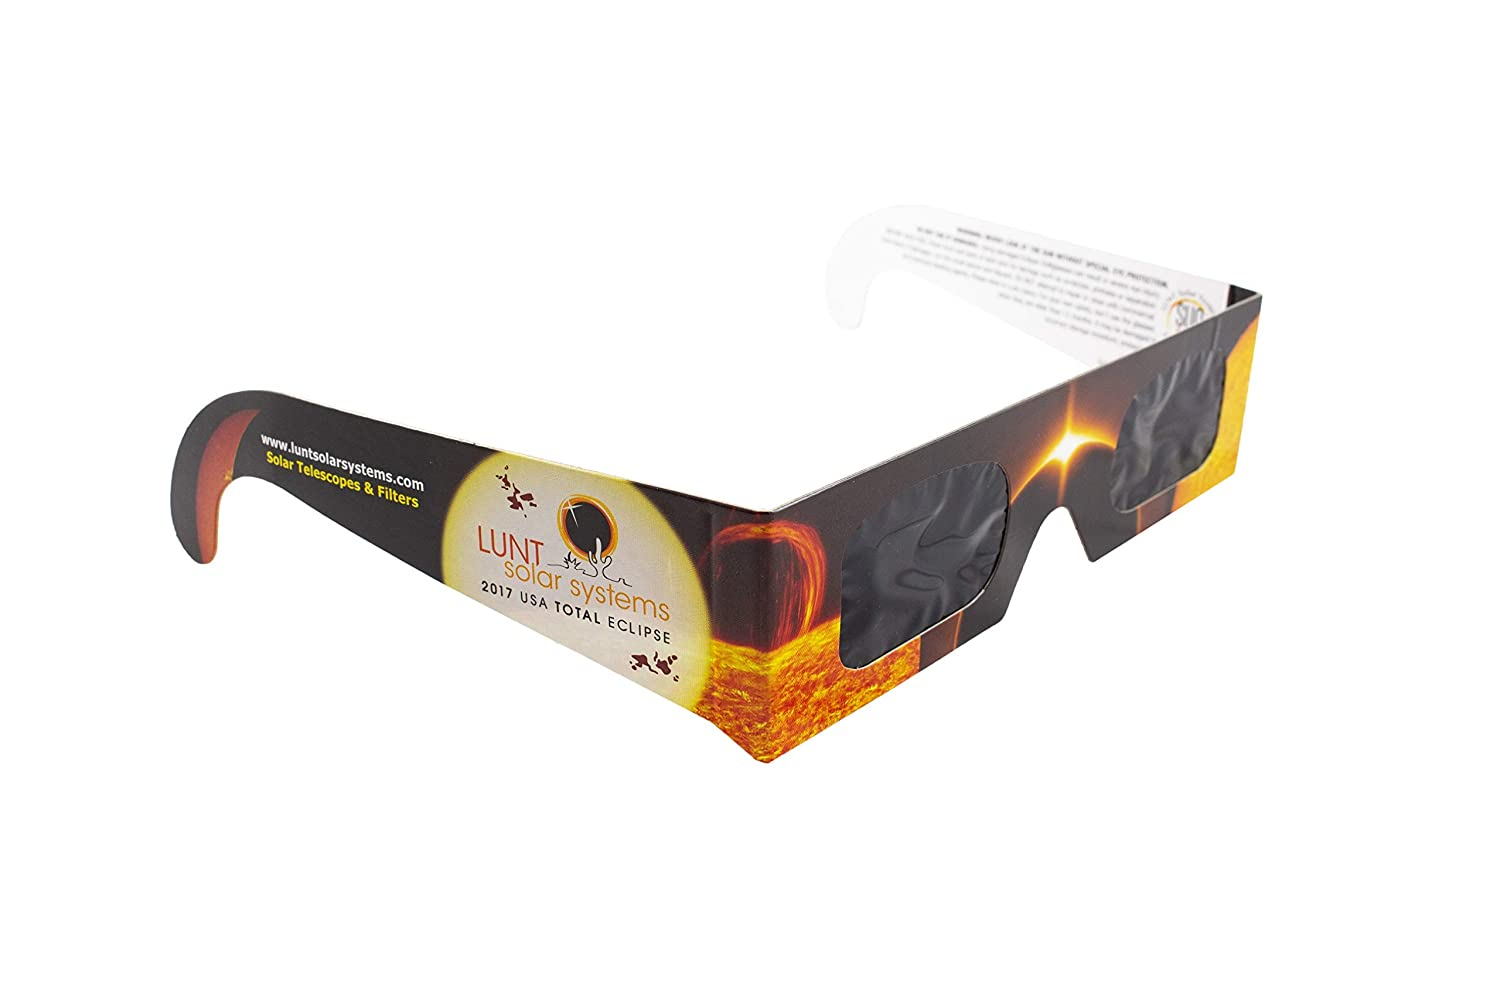 5-Pack Premium ISO and CE Certified Lunt Solar Eclipse Glasses